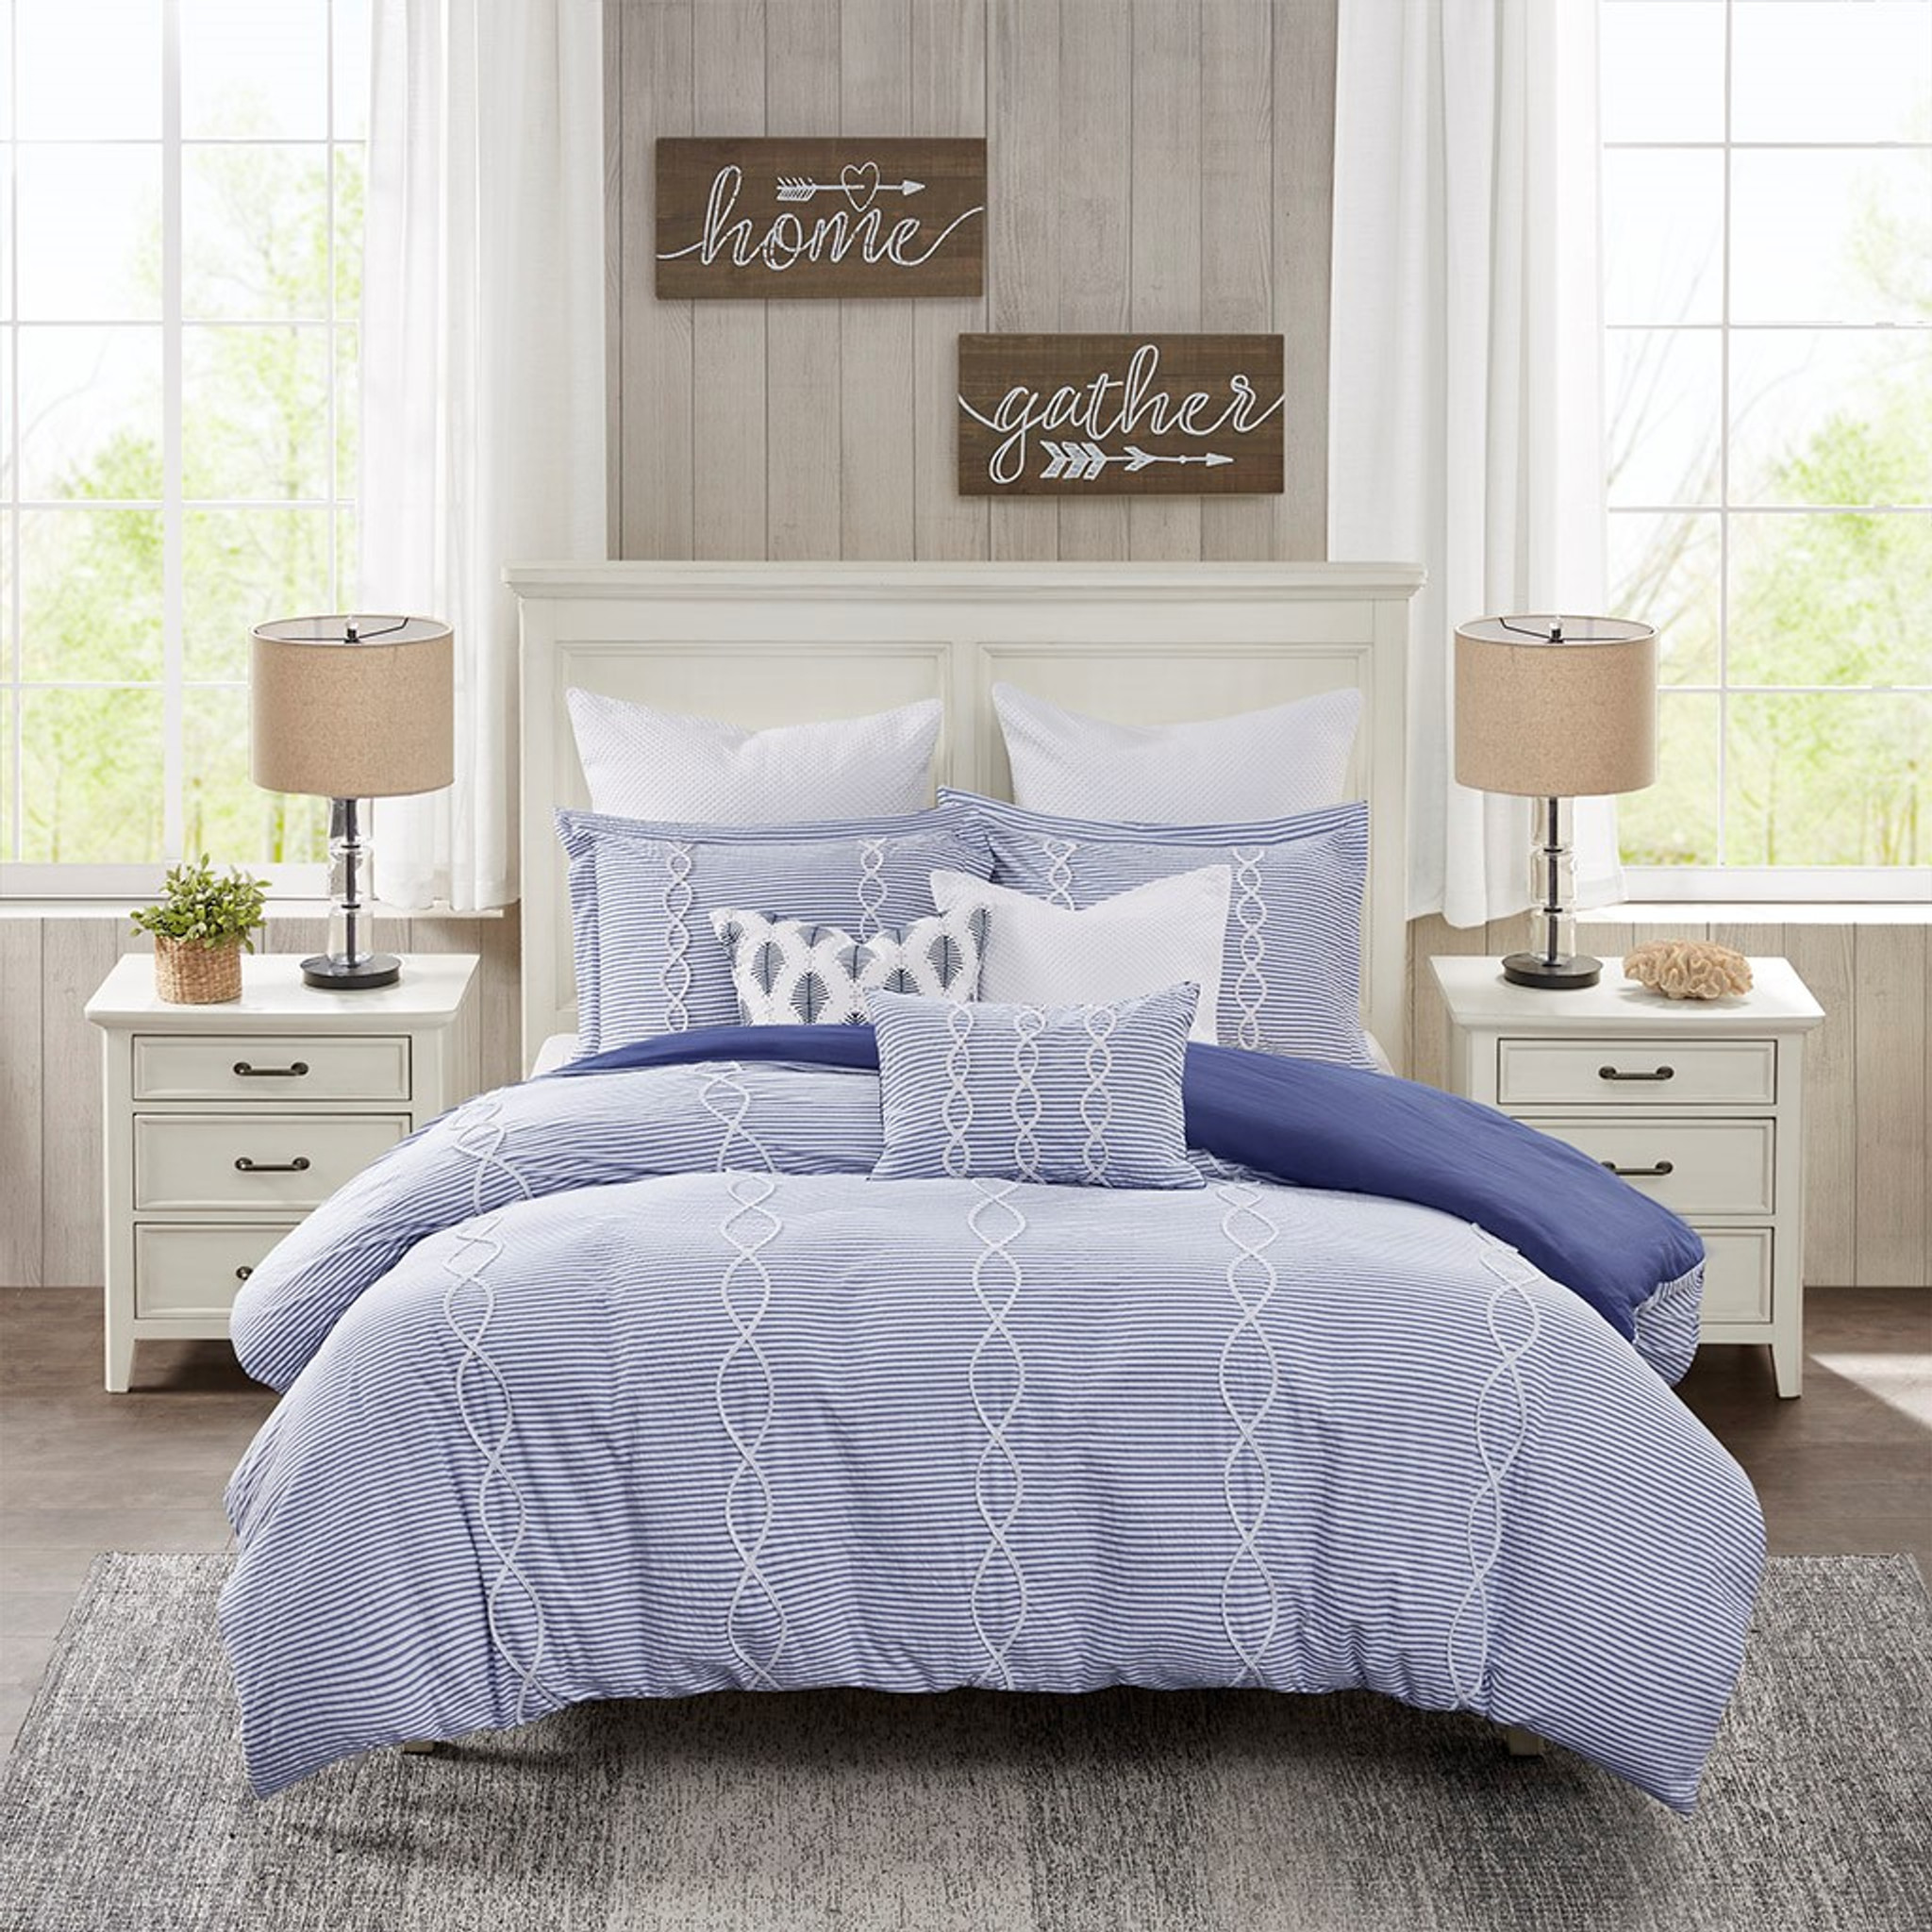 Ocean Blue Coastal Farmhouse Comforter King Set Caron S Beach House